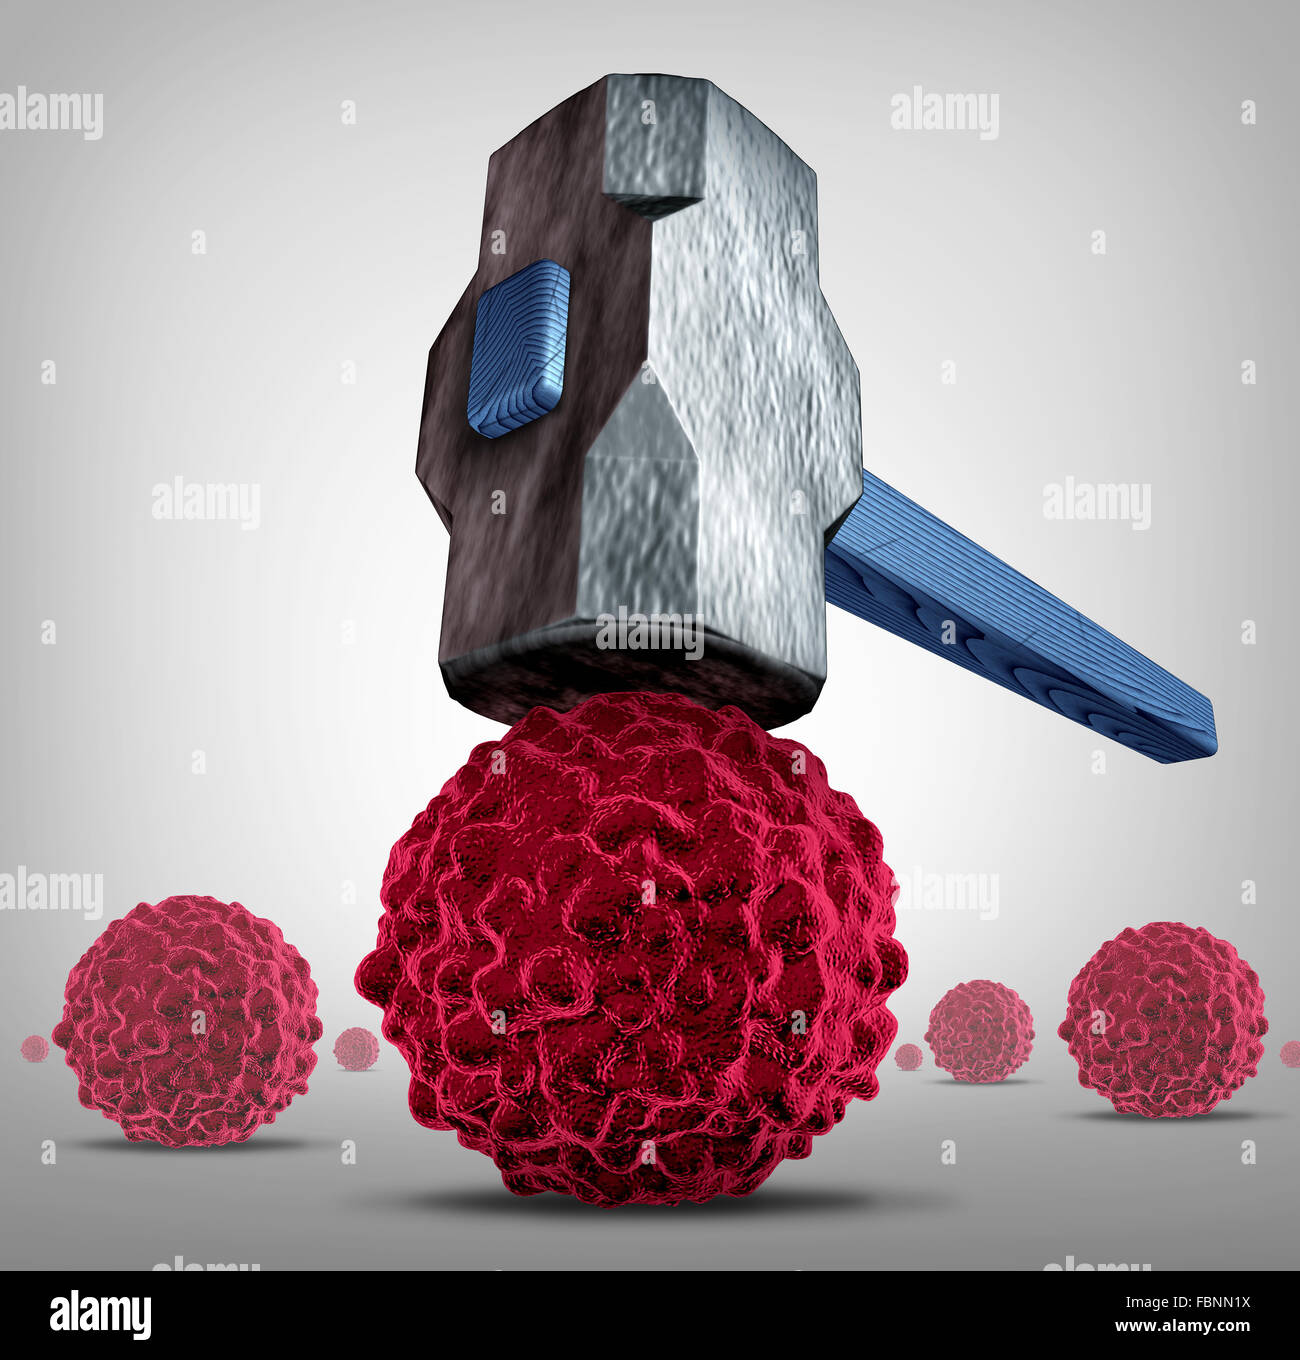 Crush cancer concept as a heavy sledgehammer or hammer crushing and smashing,a cancerous cell as a health care medical - Stock Image